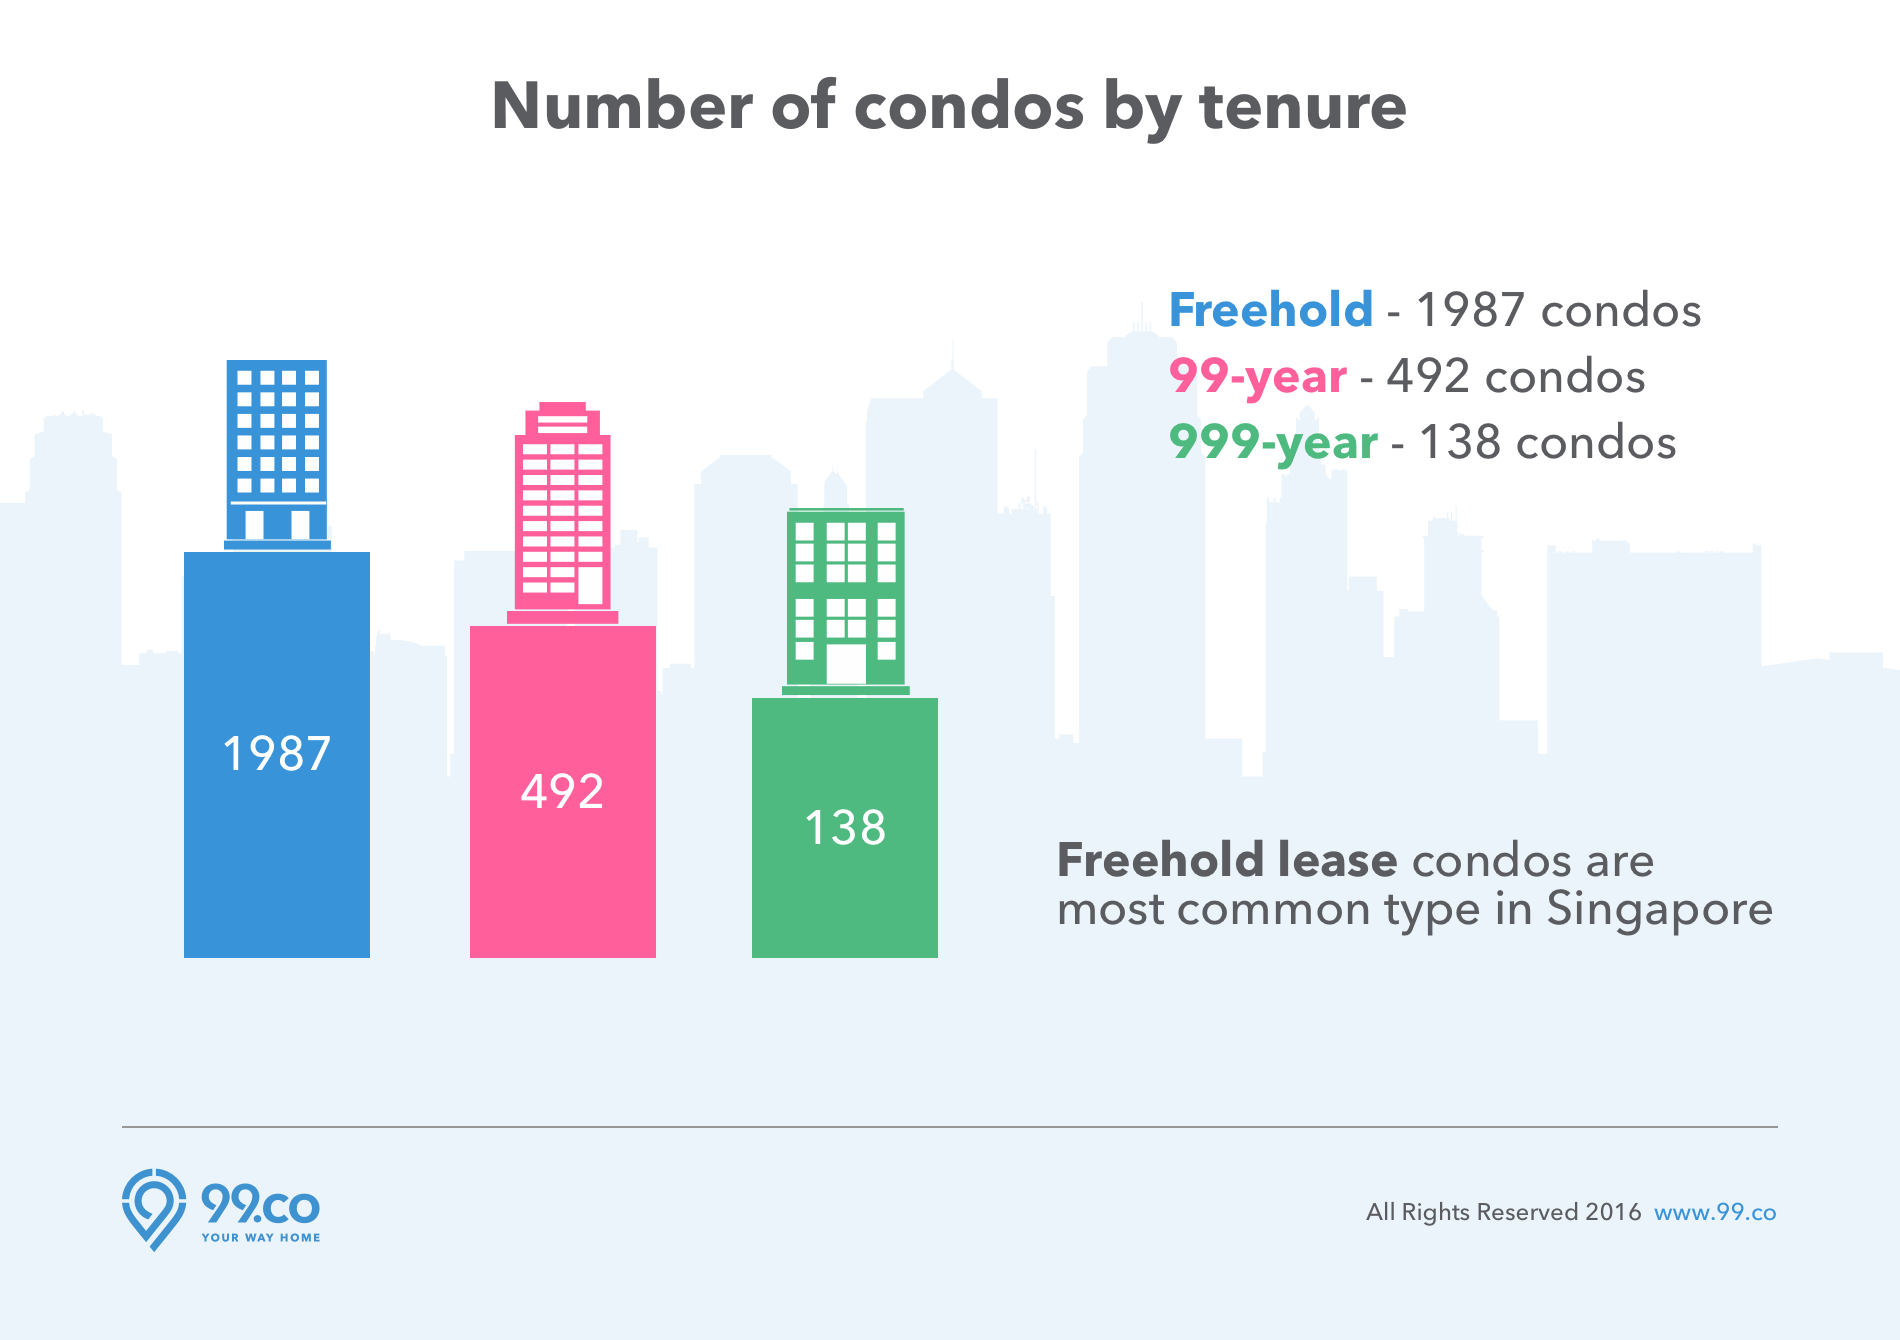 Number of condos by tenure